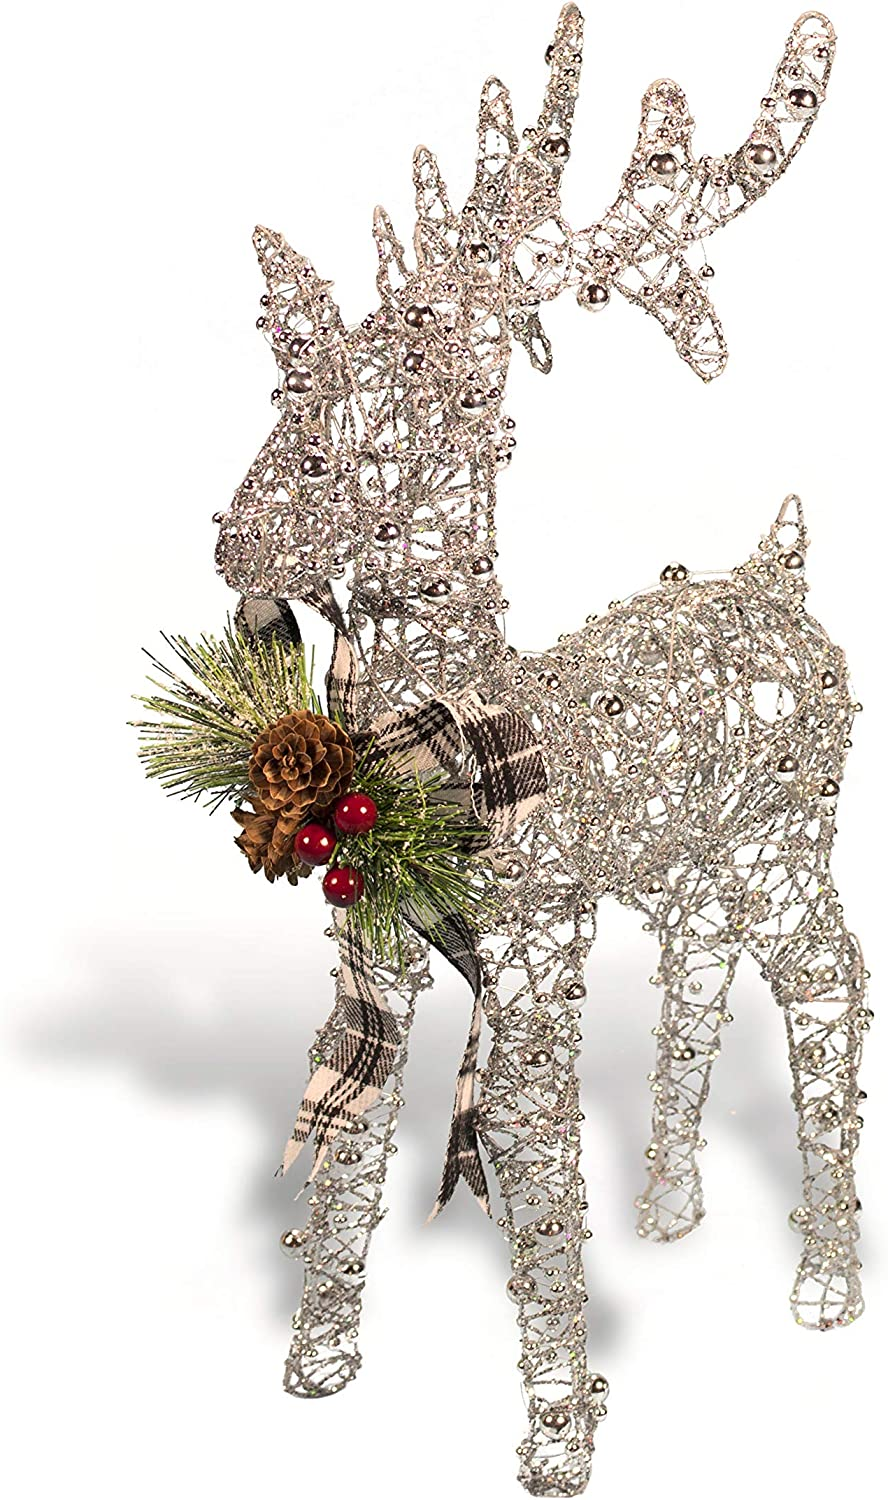 Christmas Reindeer Figurine - Glittery Beaded Metal Wire Reindeer - with Plaid Bow & Holiday Floral Accents (Silver)